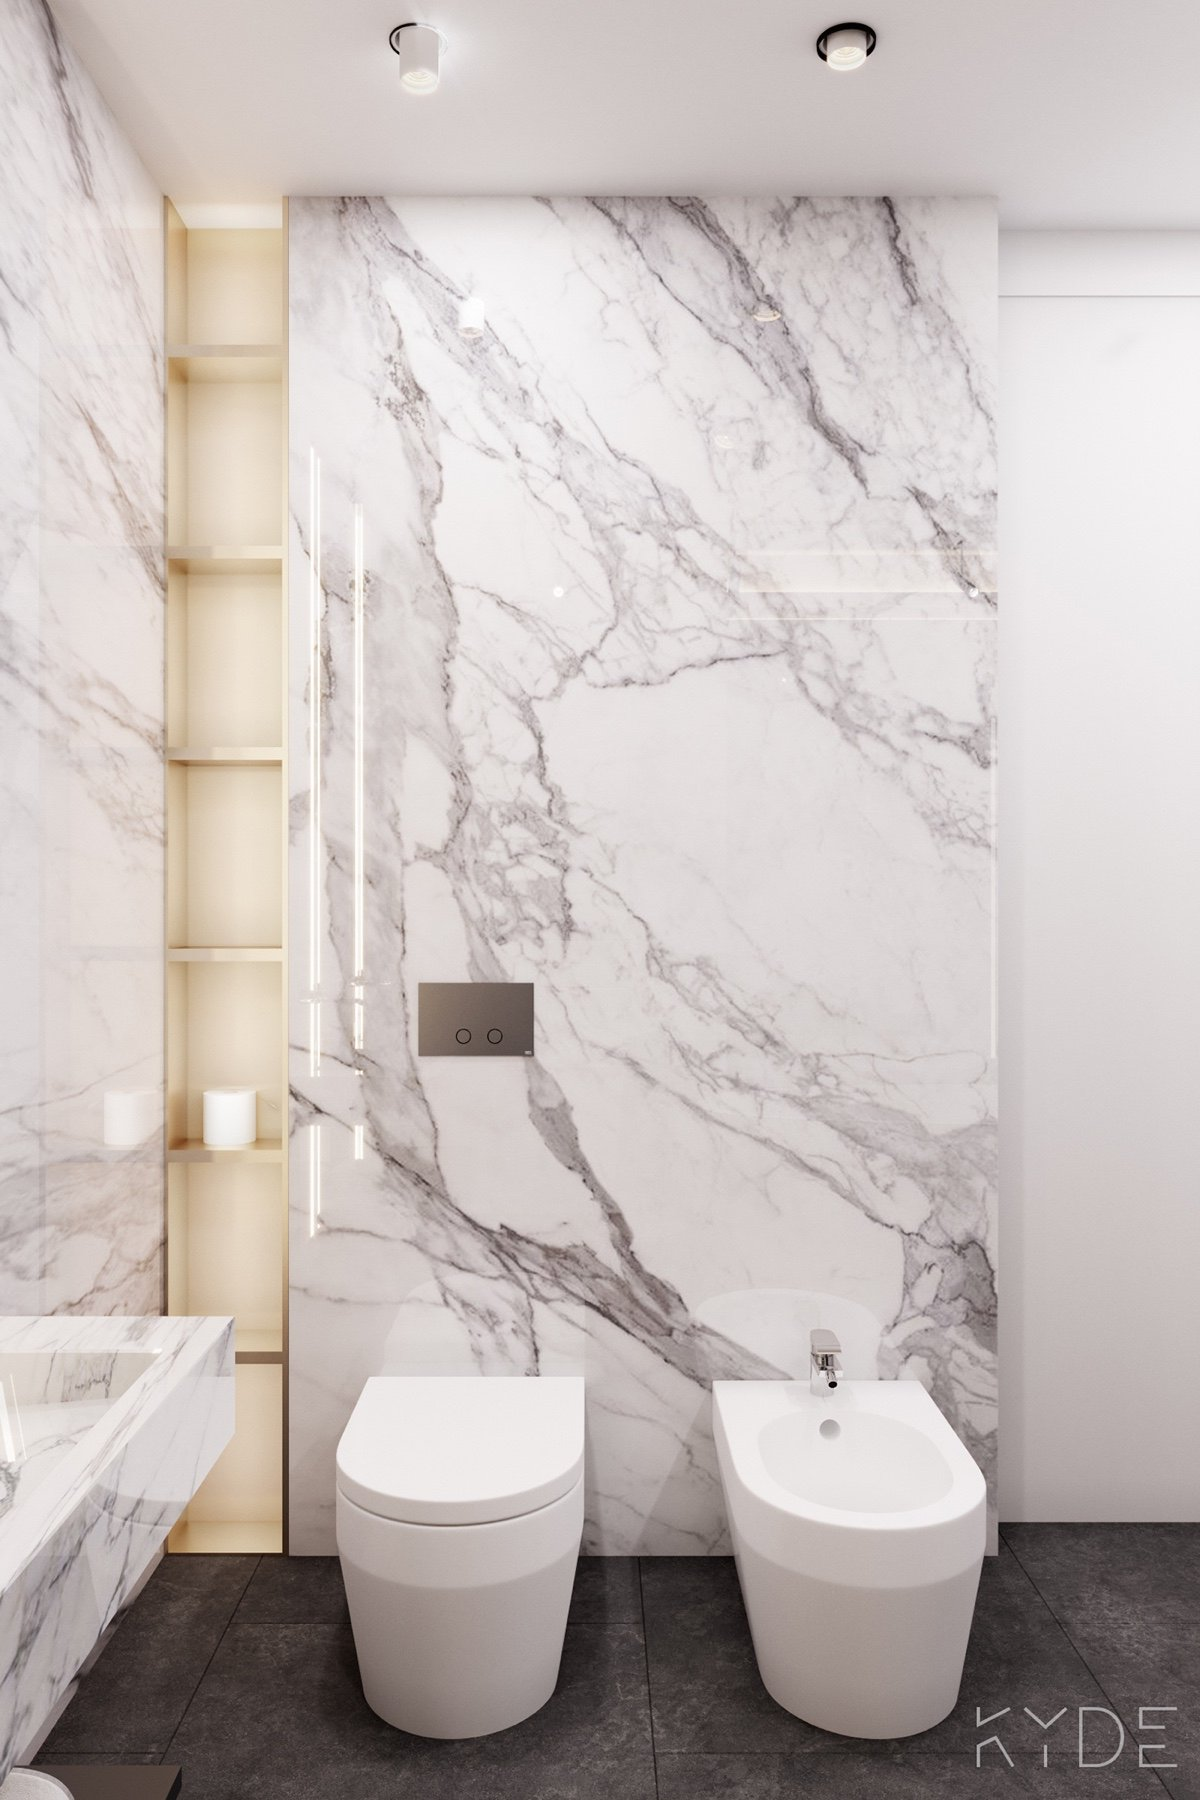 Marble Wall His And Hers Amenities - A summer ready home perfect for your dream vacation